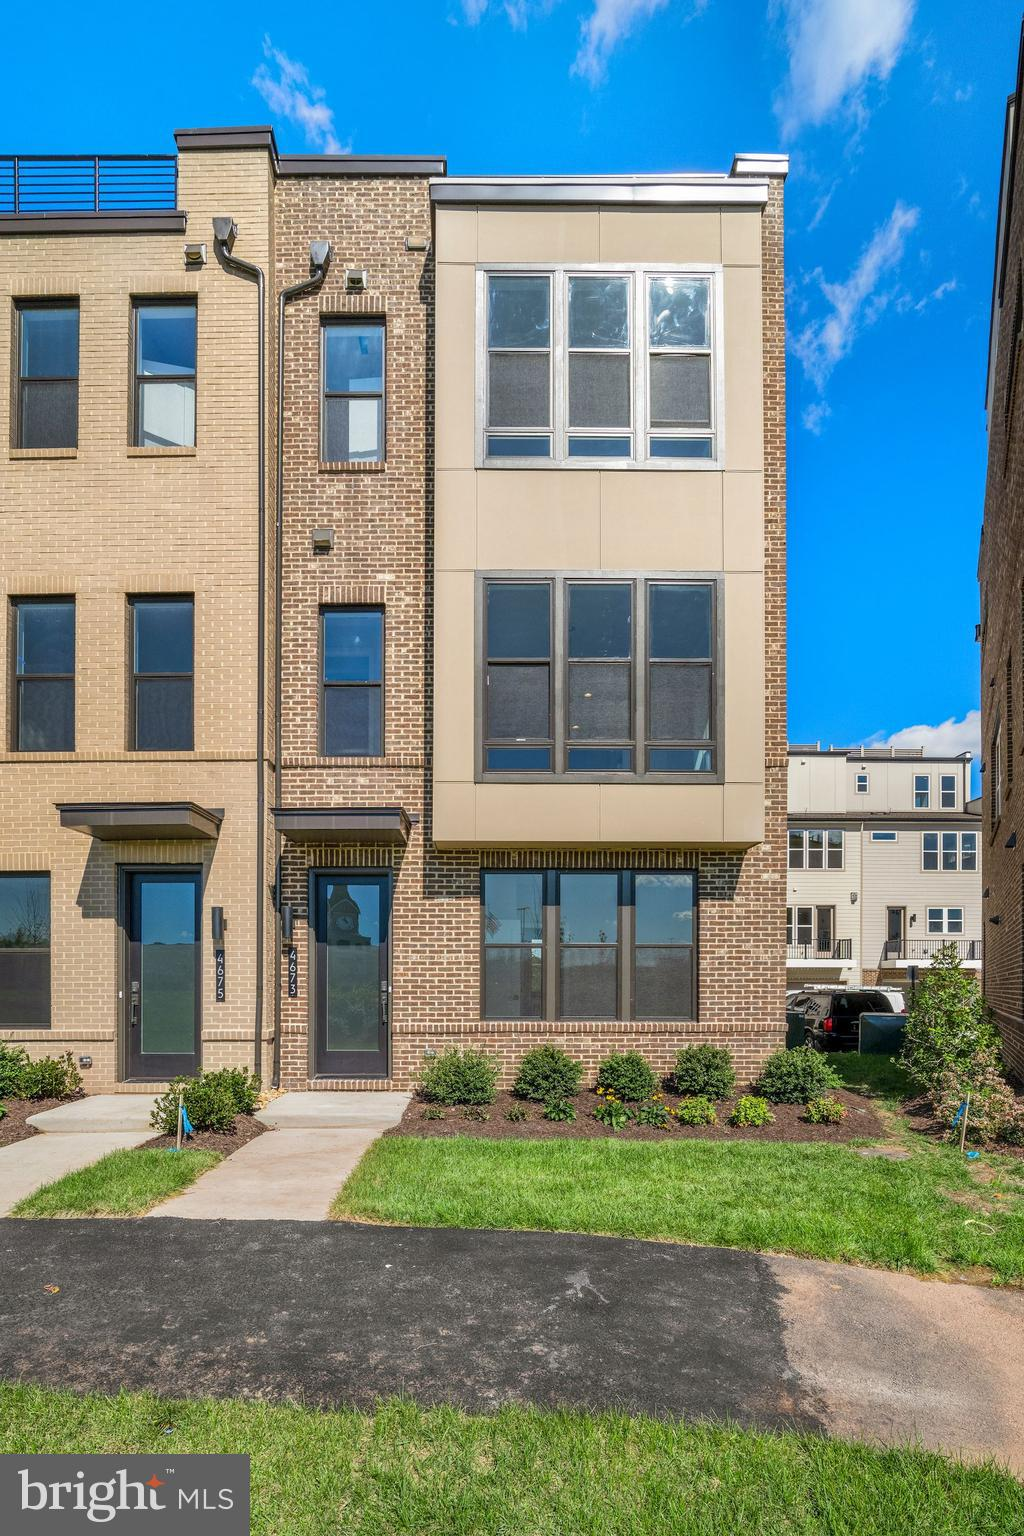 Move in Fall 2021! Situated within steps of shopping and dining, this end unit town home is all abou